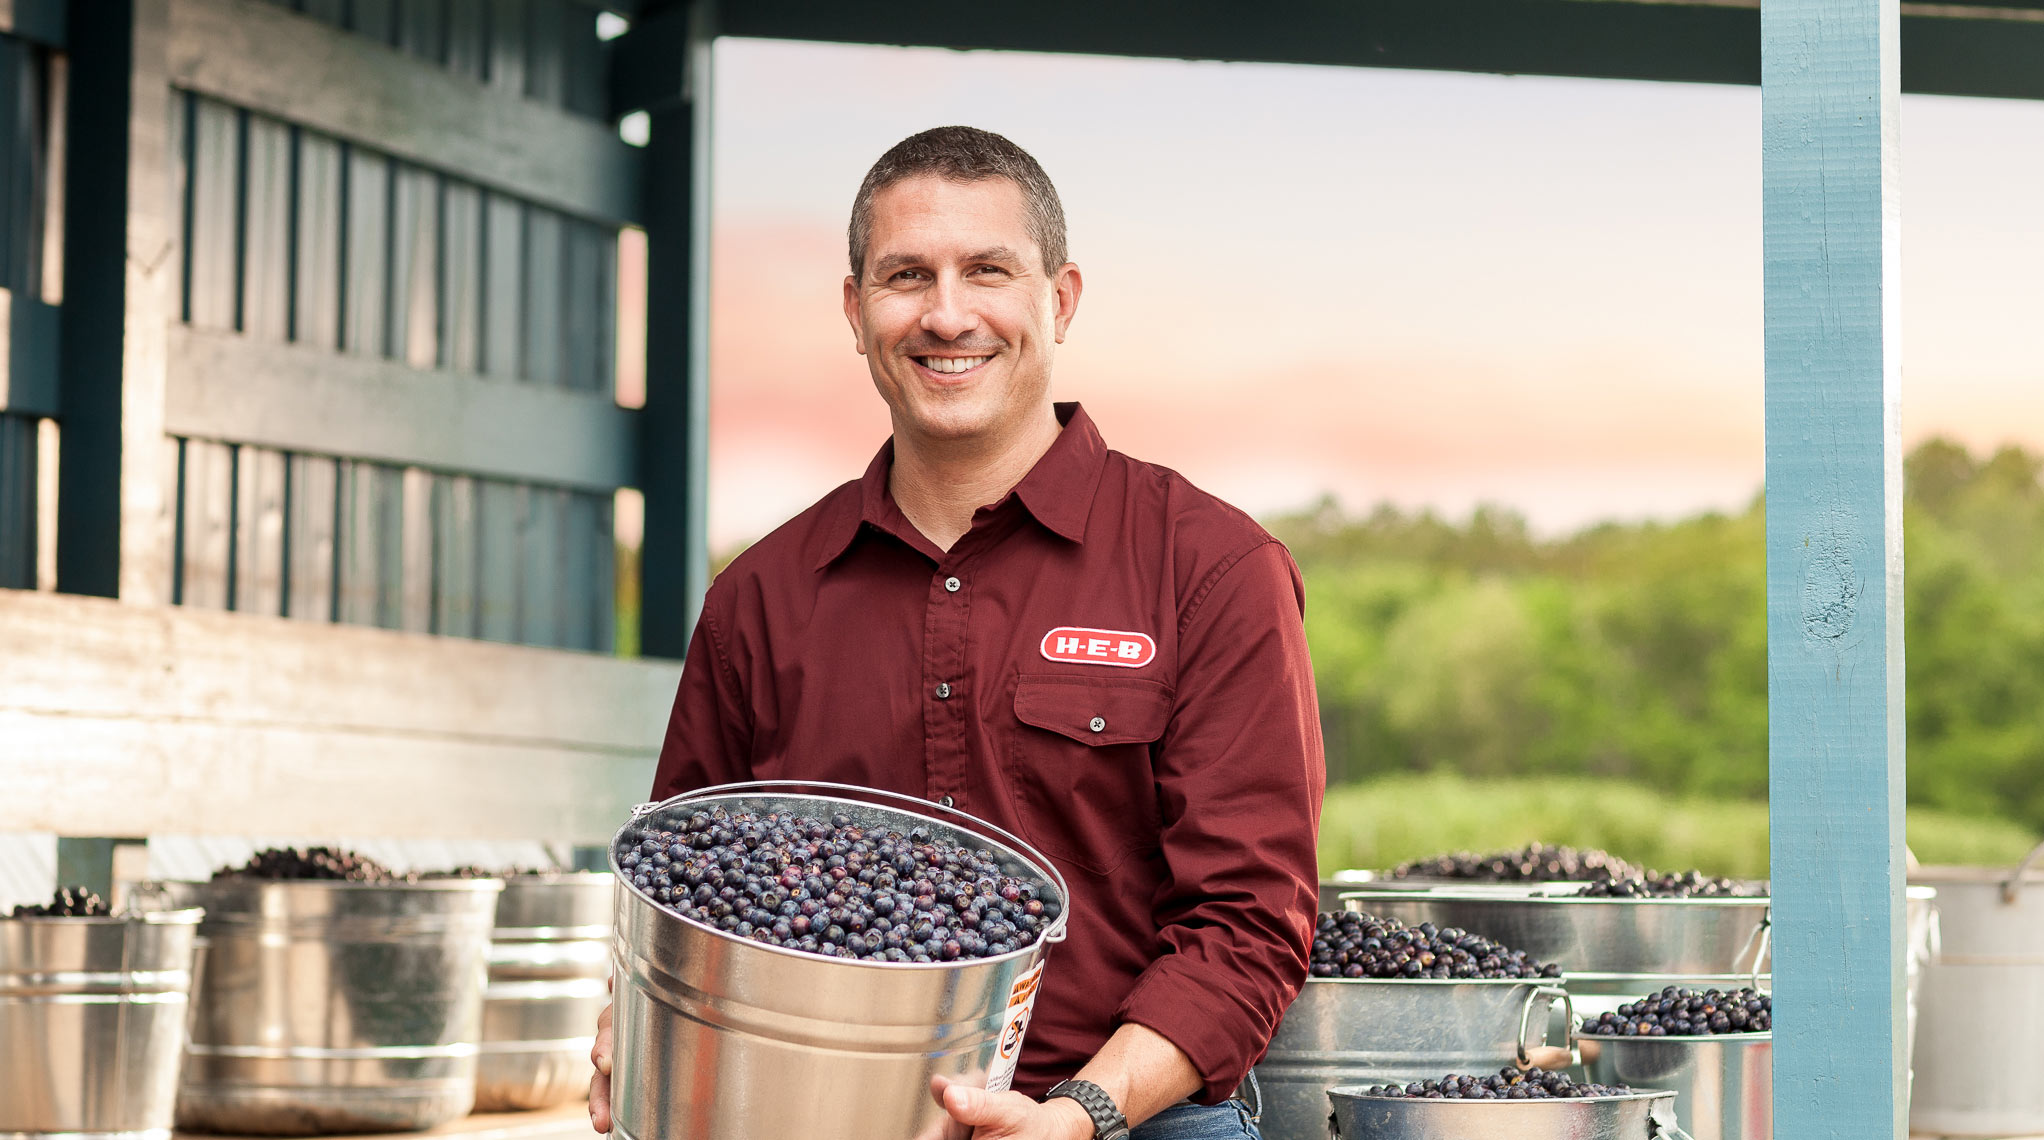 heb-blueberries-produce-department-jason-risner-photography-8742